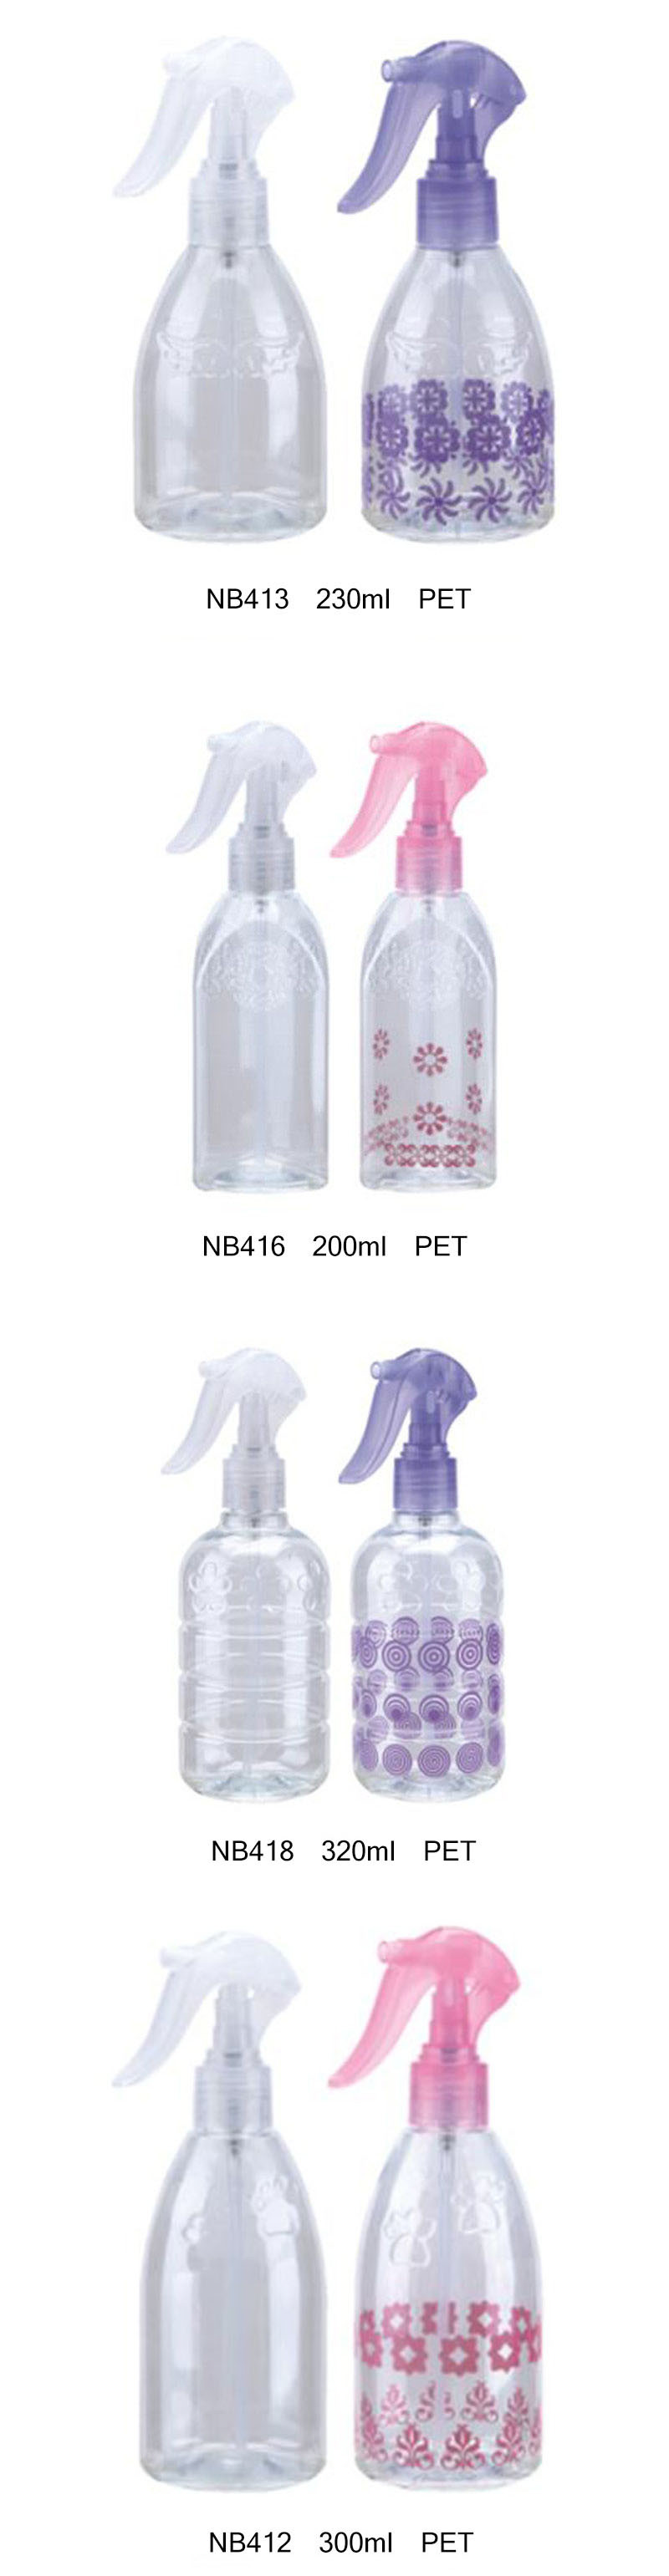 Plastic Trigger Sprayer Round Bottle for Cosmetics (NB412)